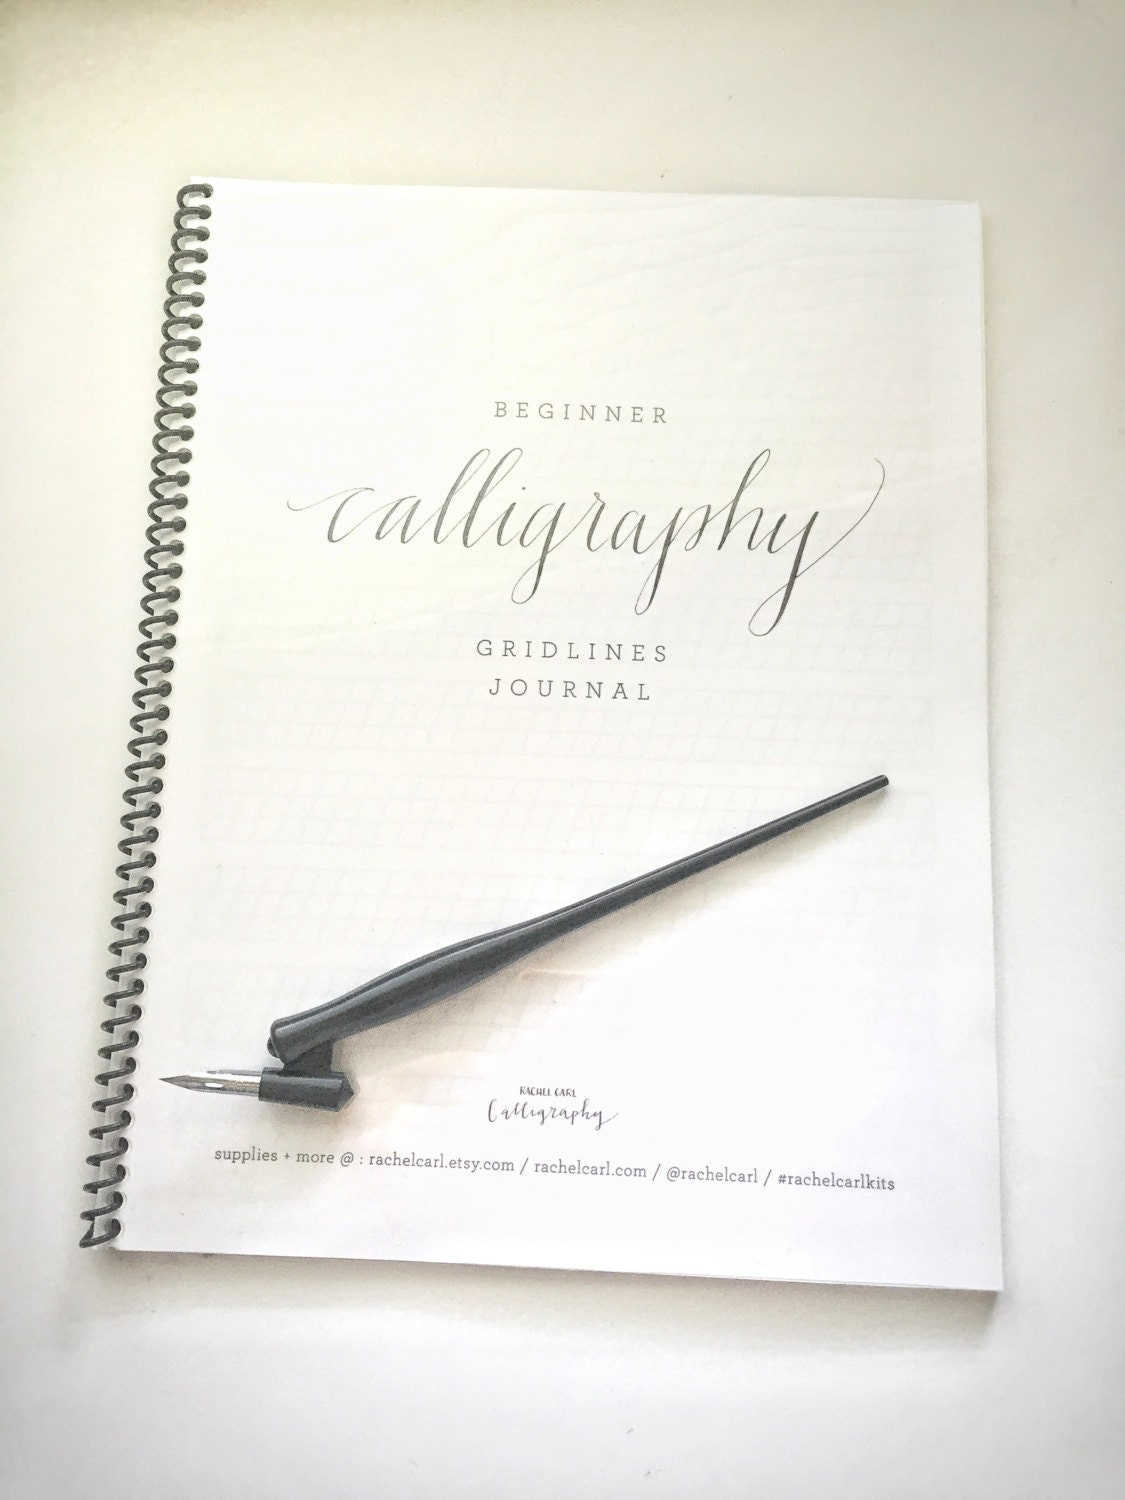 Beginner calligraphy journal with gridlines notepad from